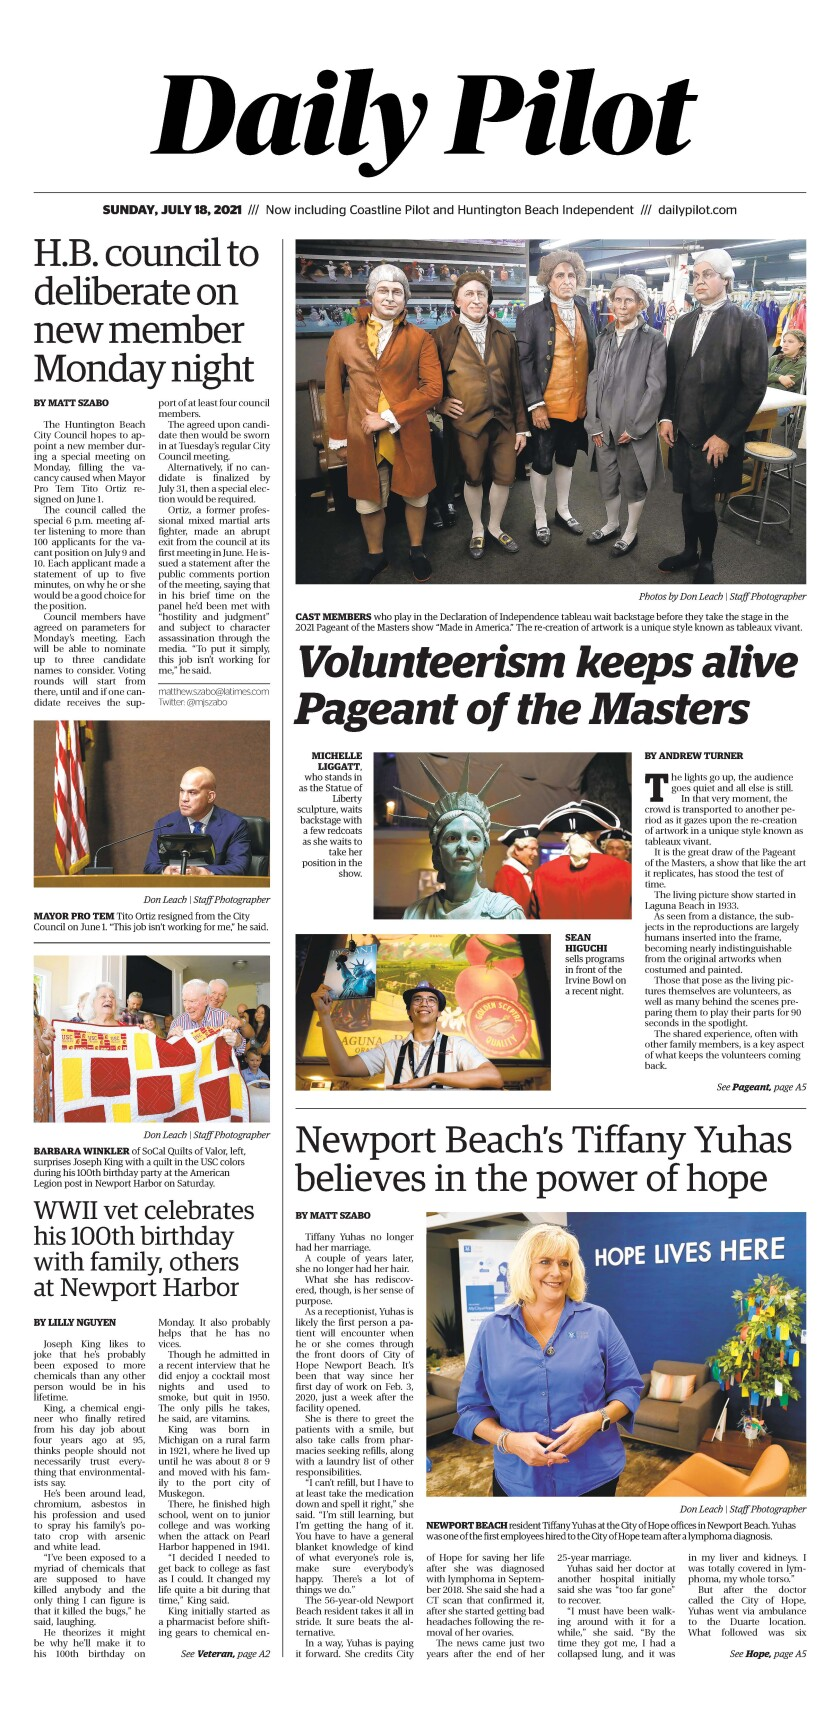 Front page of Daily Pilot e-newspaper for Sunday, July 18, 2021.